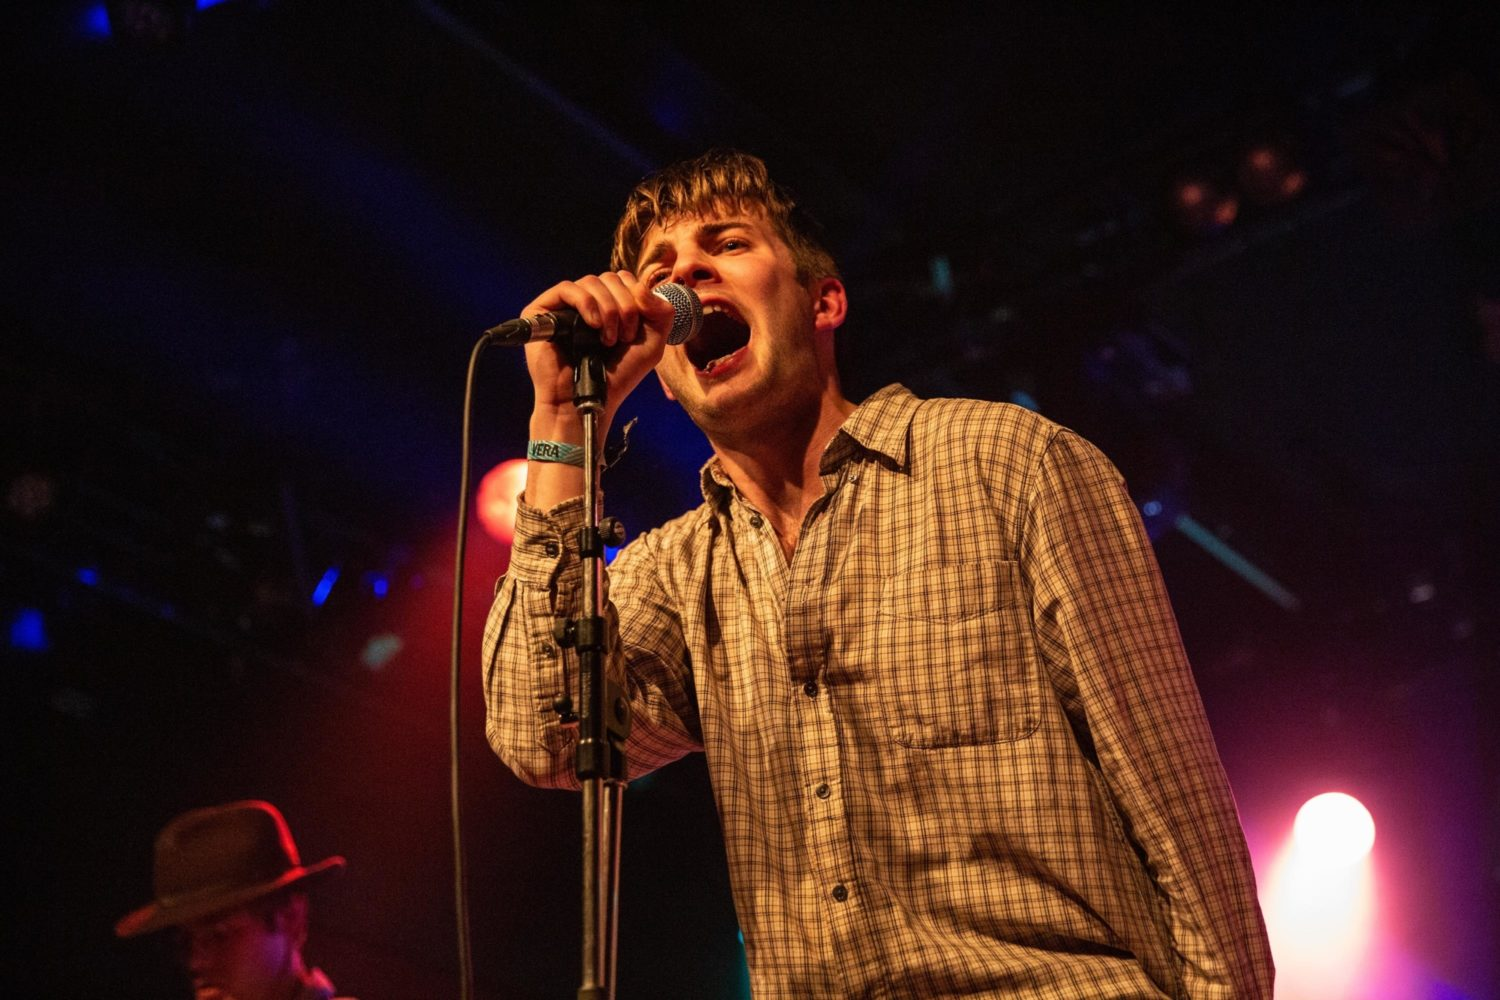 Fontaines DC, Westerman, Viagra Boys and more to play second DIY Presents showcase at SXSW